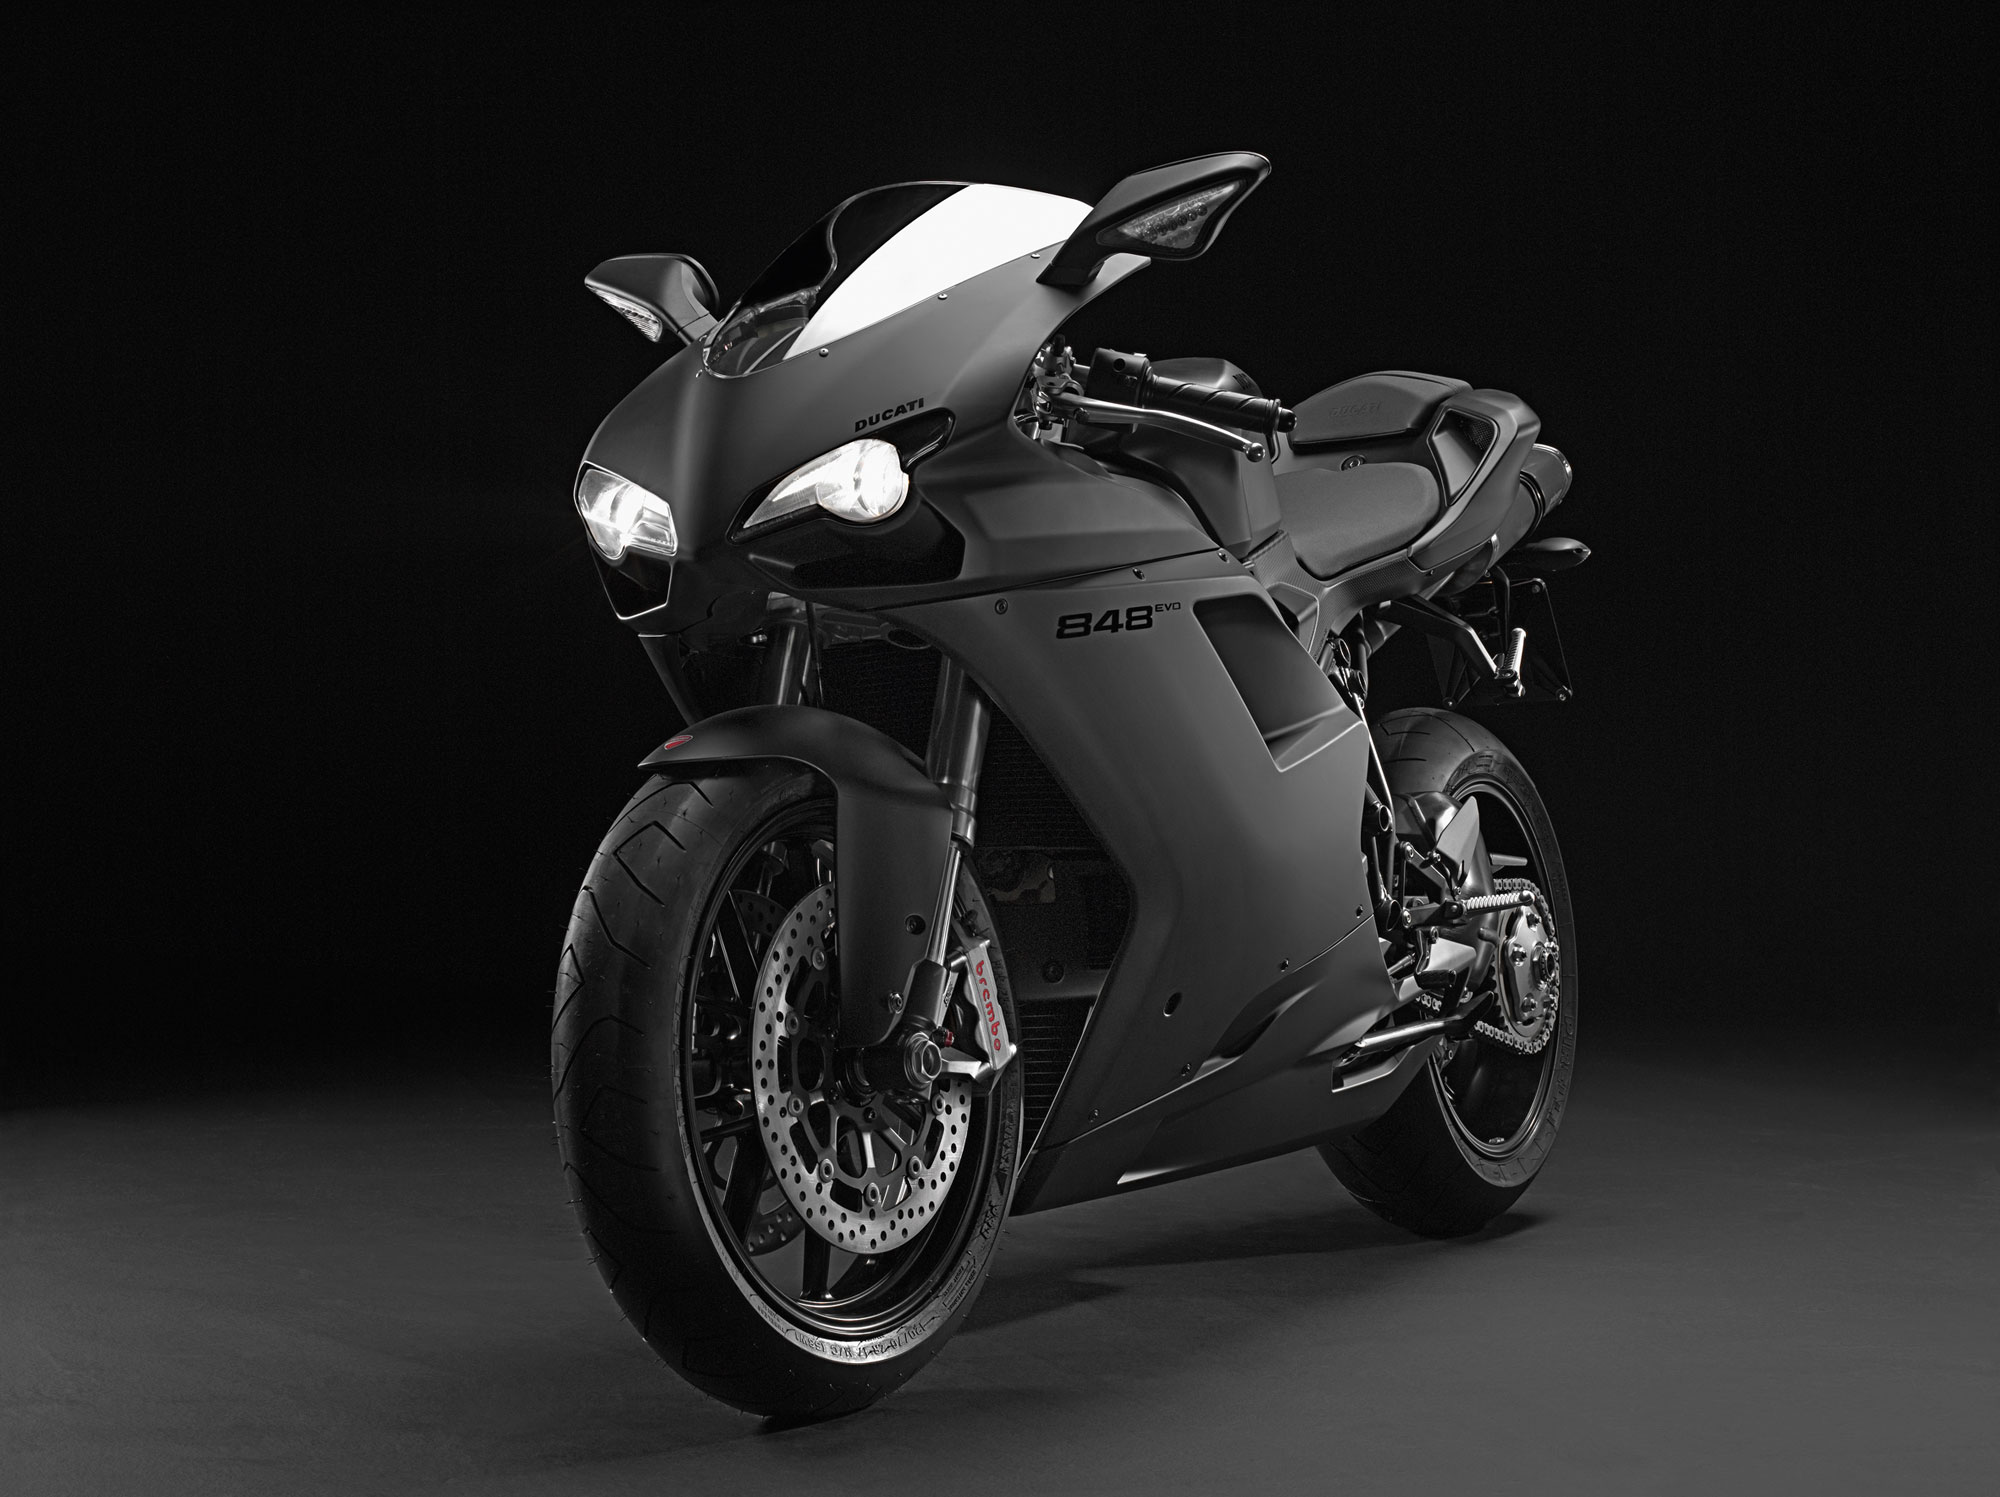 Ducati Superbike 848 Evo Dark #2